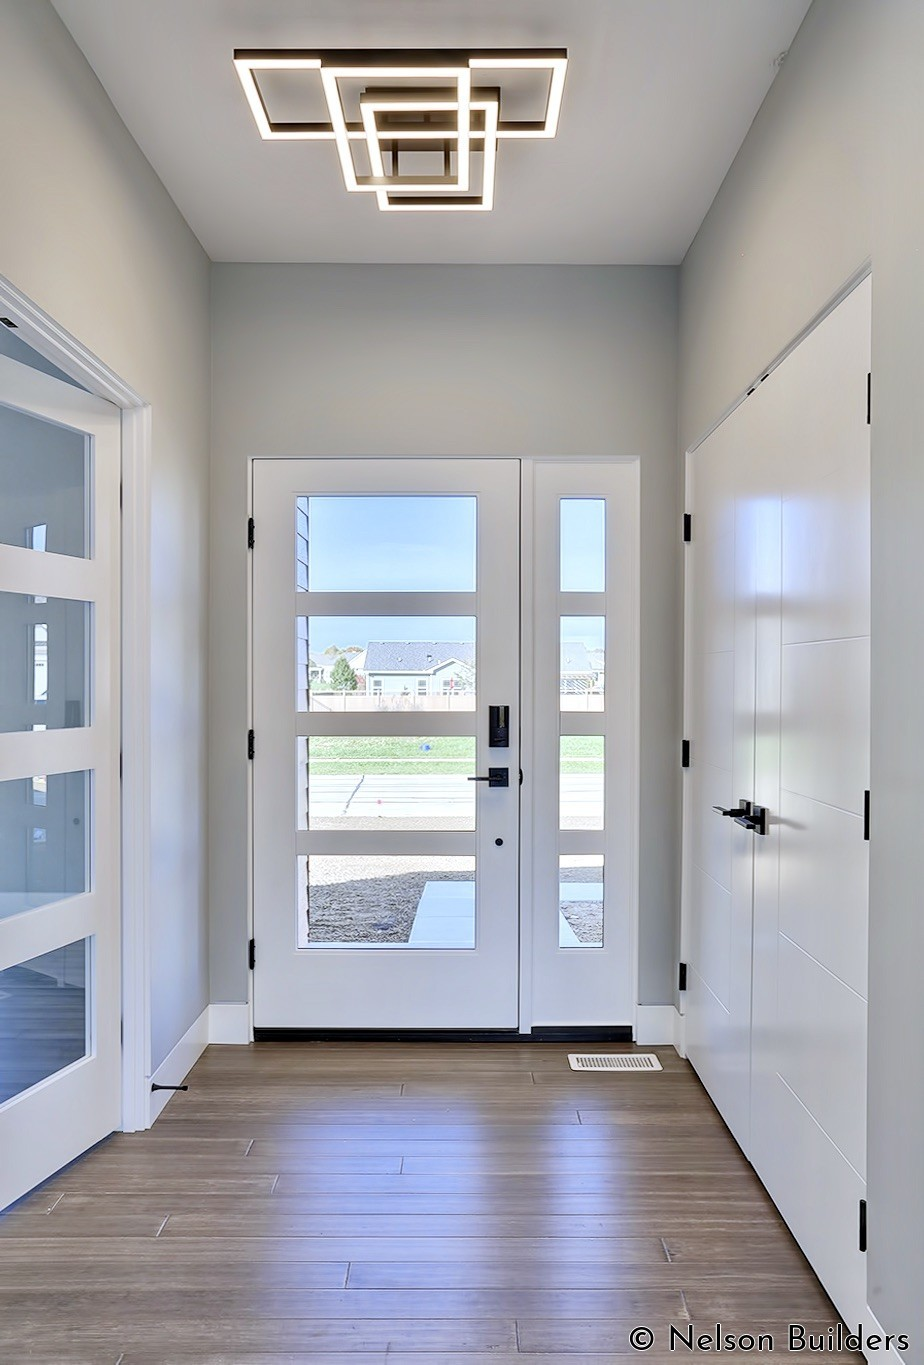 The entry foyer is accented with several glass doors and a modern LED bar fixture.